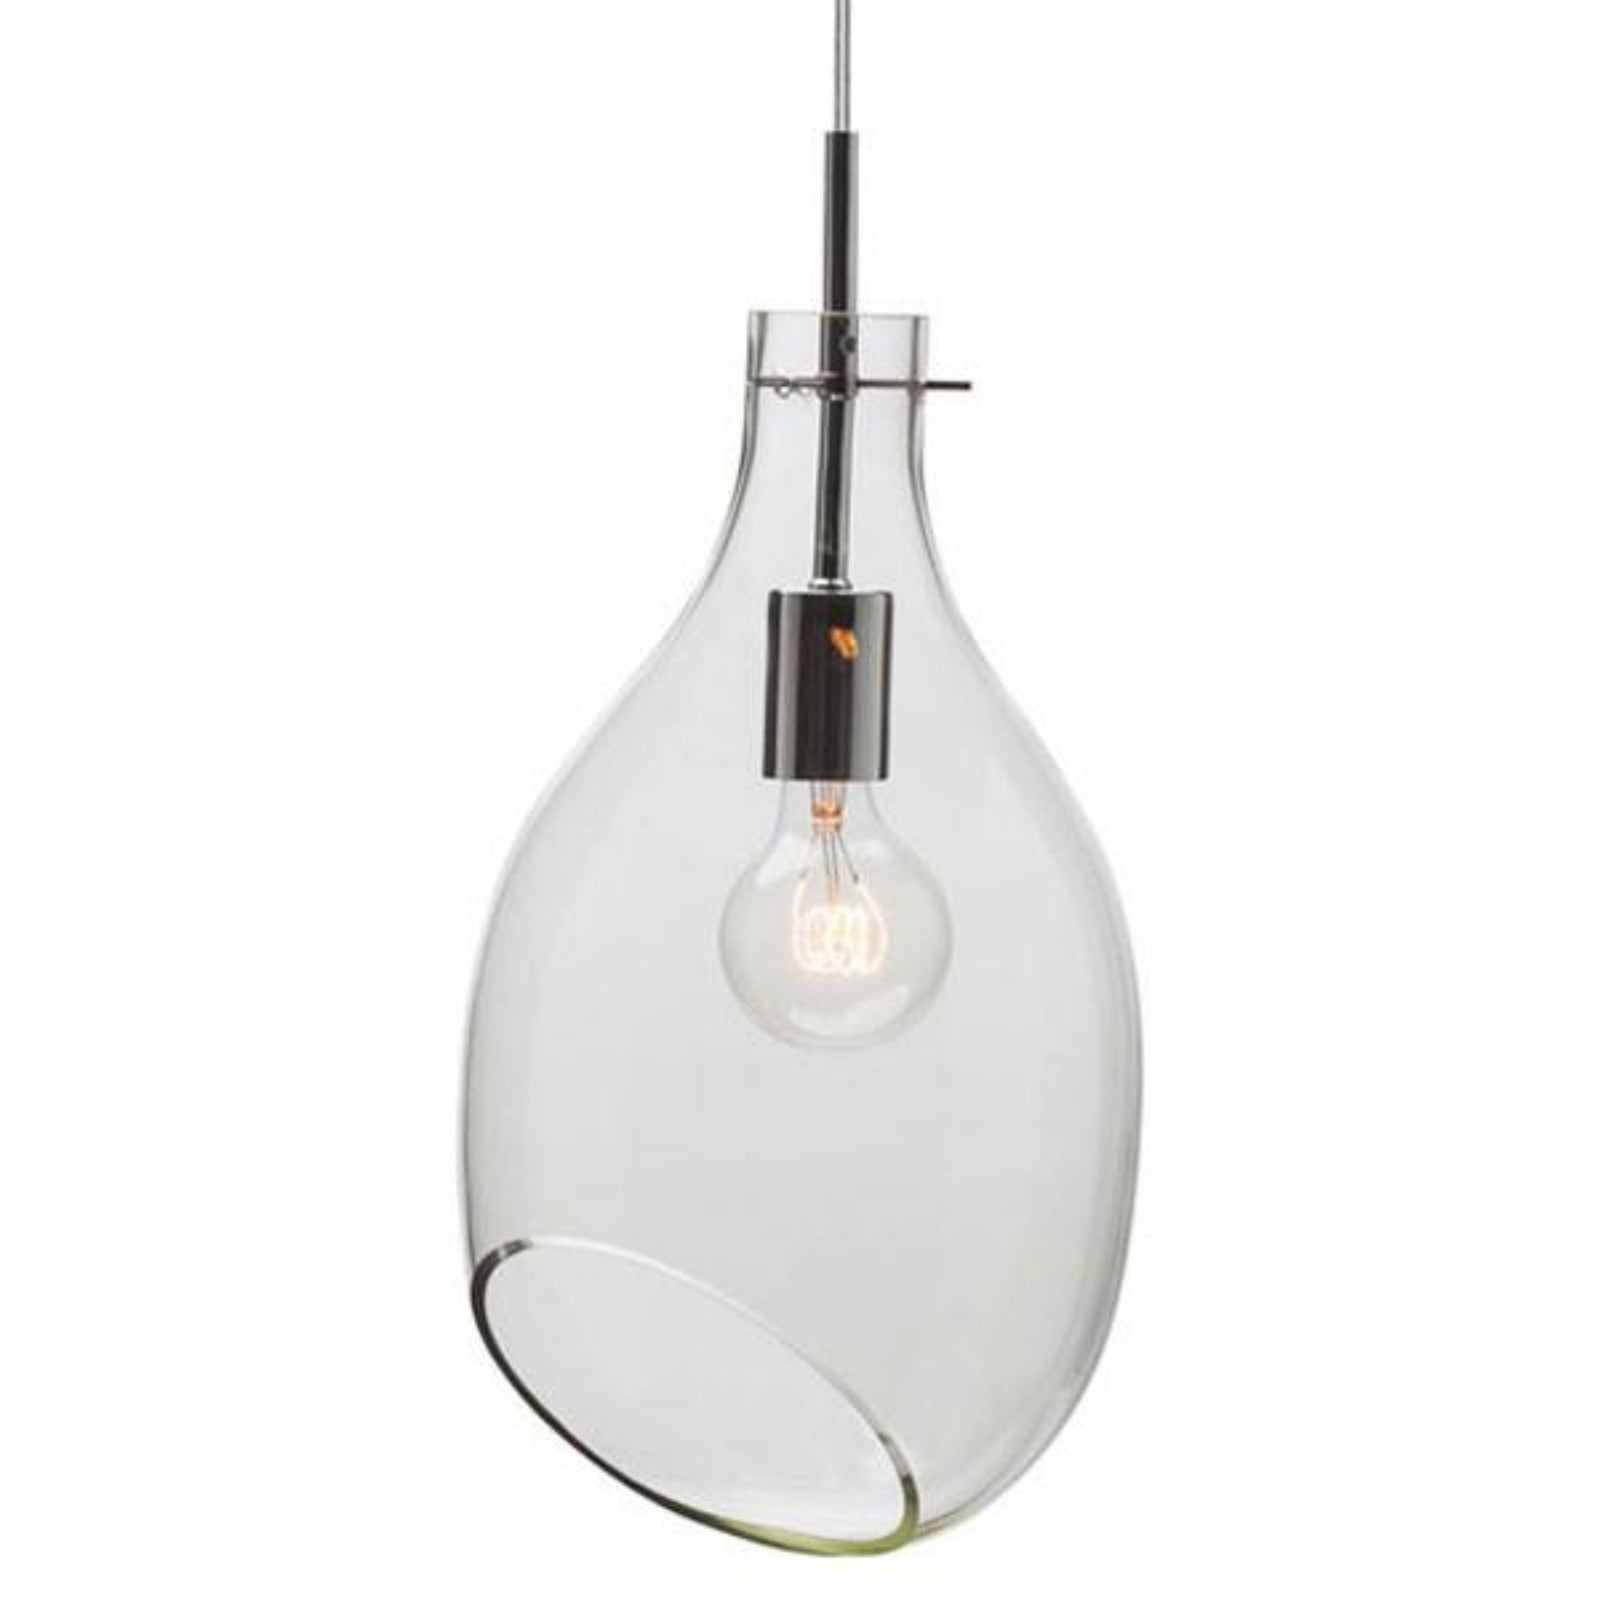 Carling Pendant http://www.oldbonesco.com/ Lighting